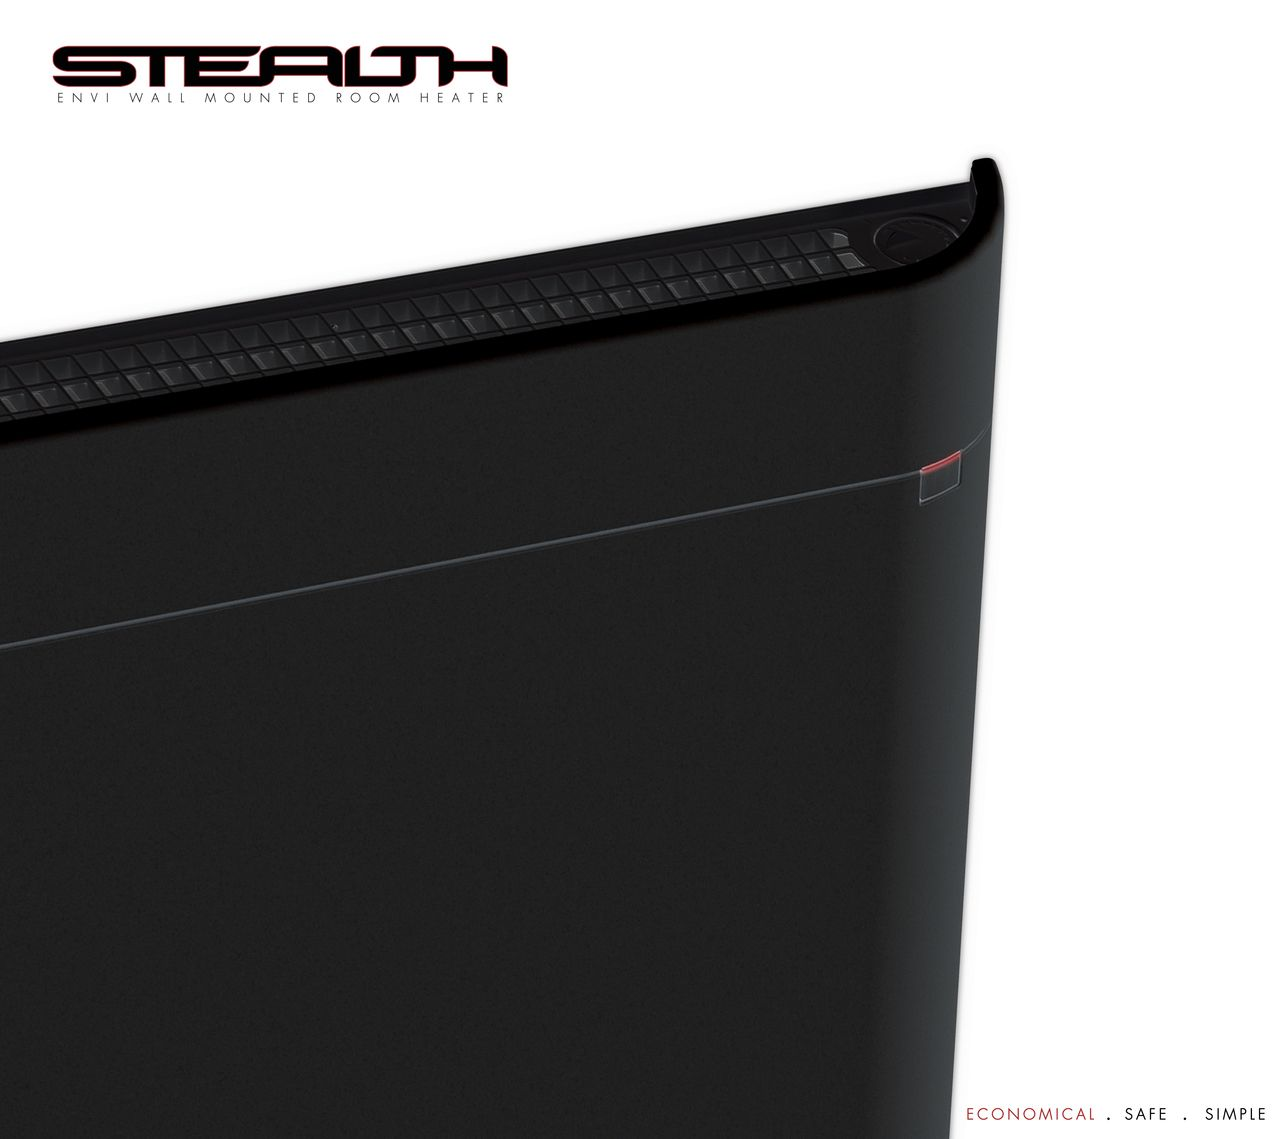 The Stealth Envi Wall Mounted Heater Wall mount Walls and Room